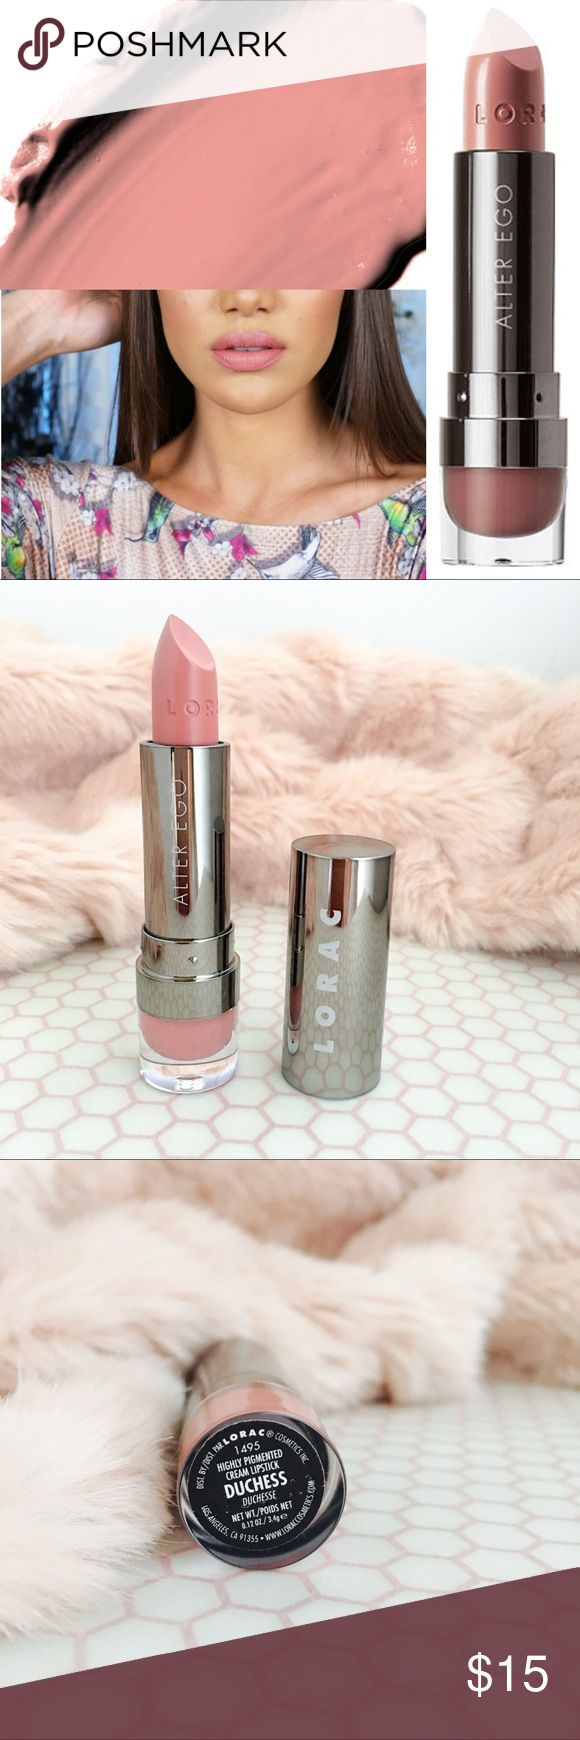 💋 LORAC Alter Ego Lipstick - Duchess (Rosy Nude) Matte Alter Ego Lipstick - Duchess (Rosy Nude) Instantly transform your look this sexy, playful lipstick. Alter Ego coats your lips in highly-pigmented color with an opaque, matte finish. Alter Ego Lipstick contains antioxidants such as acai berry, pomegranate, grape seed extract, and vitamins C and E. Dress up your lips with LORAC. Lorac Makeup Lipstick